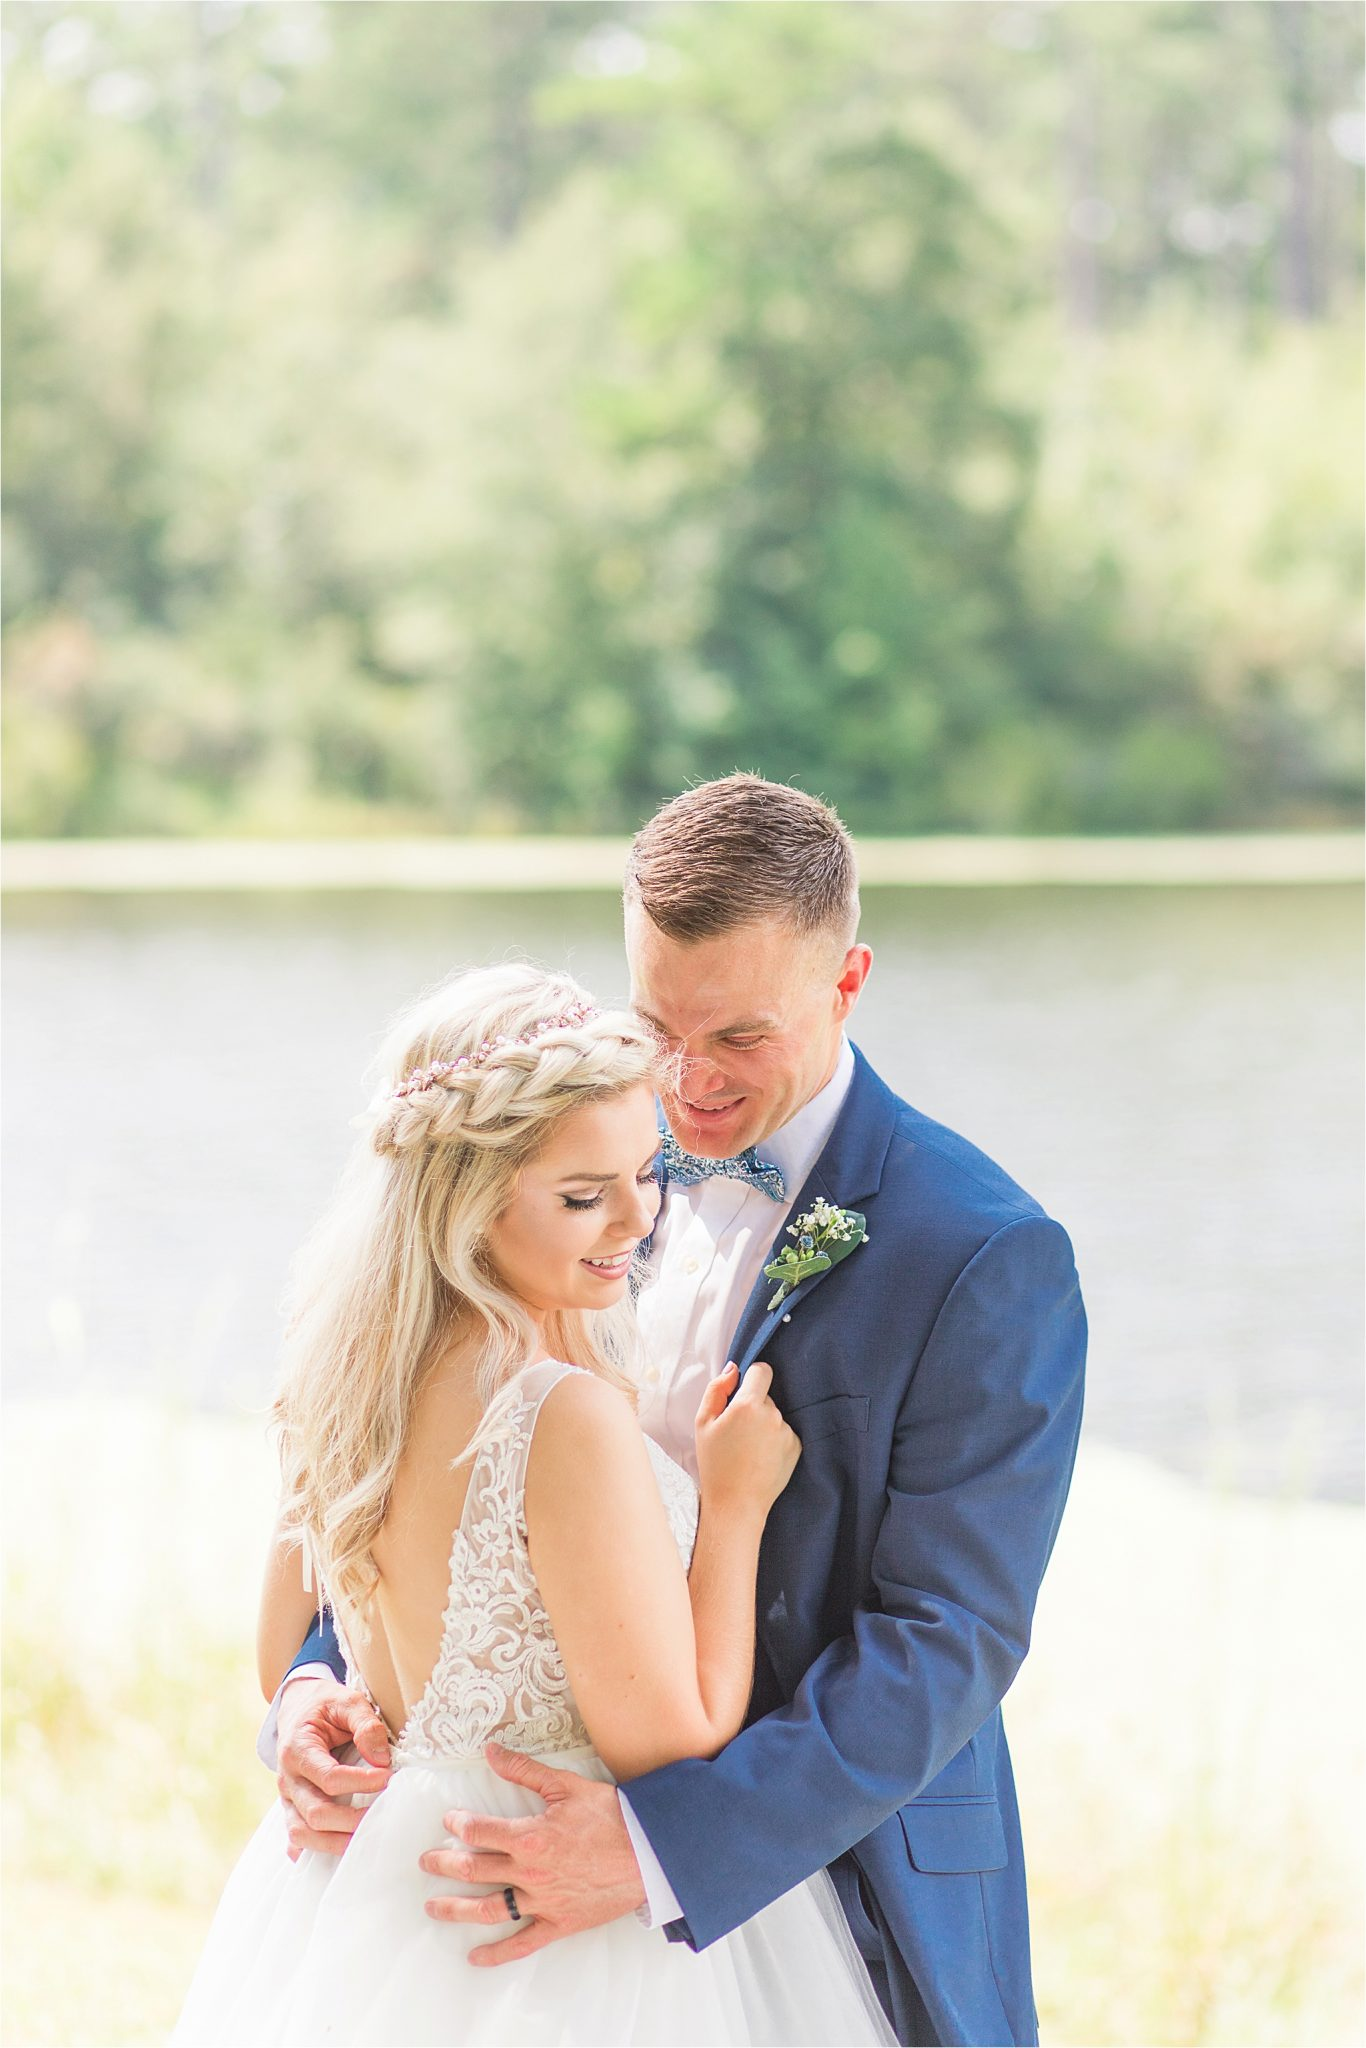 bridal-groom-portraits-photos-blue-suit-bow-tie-first-look-photo-ideas